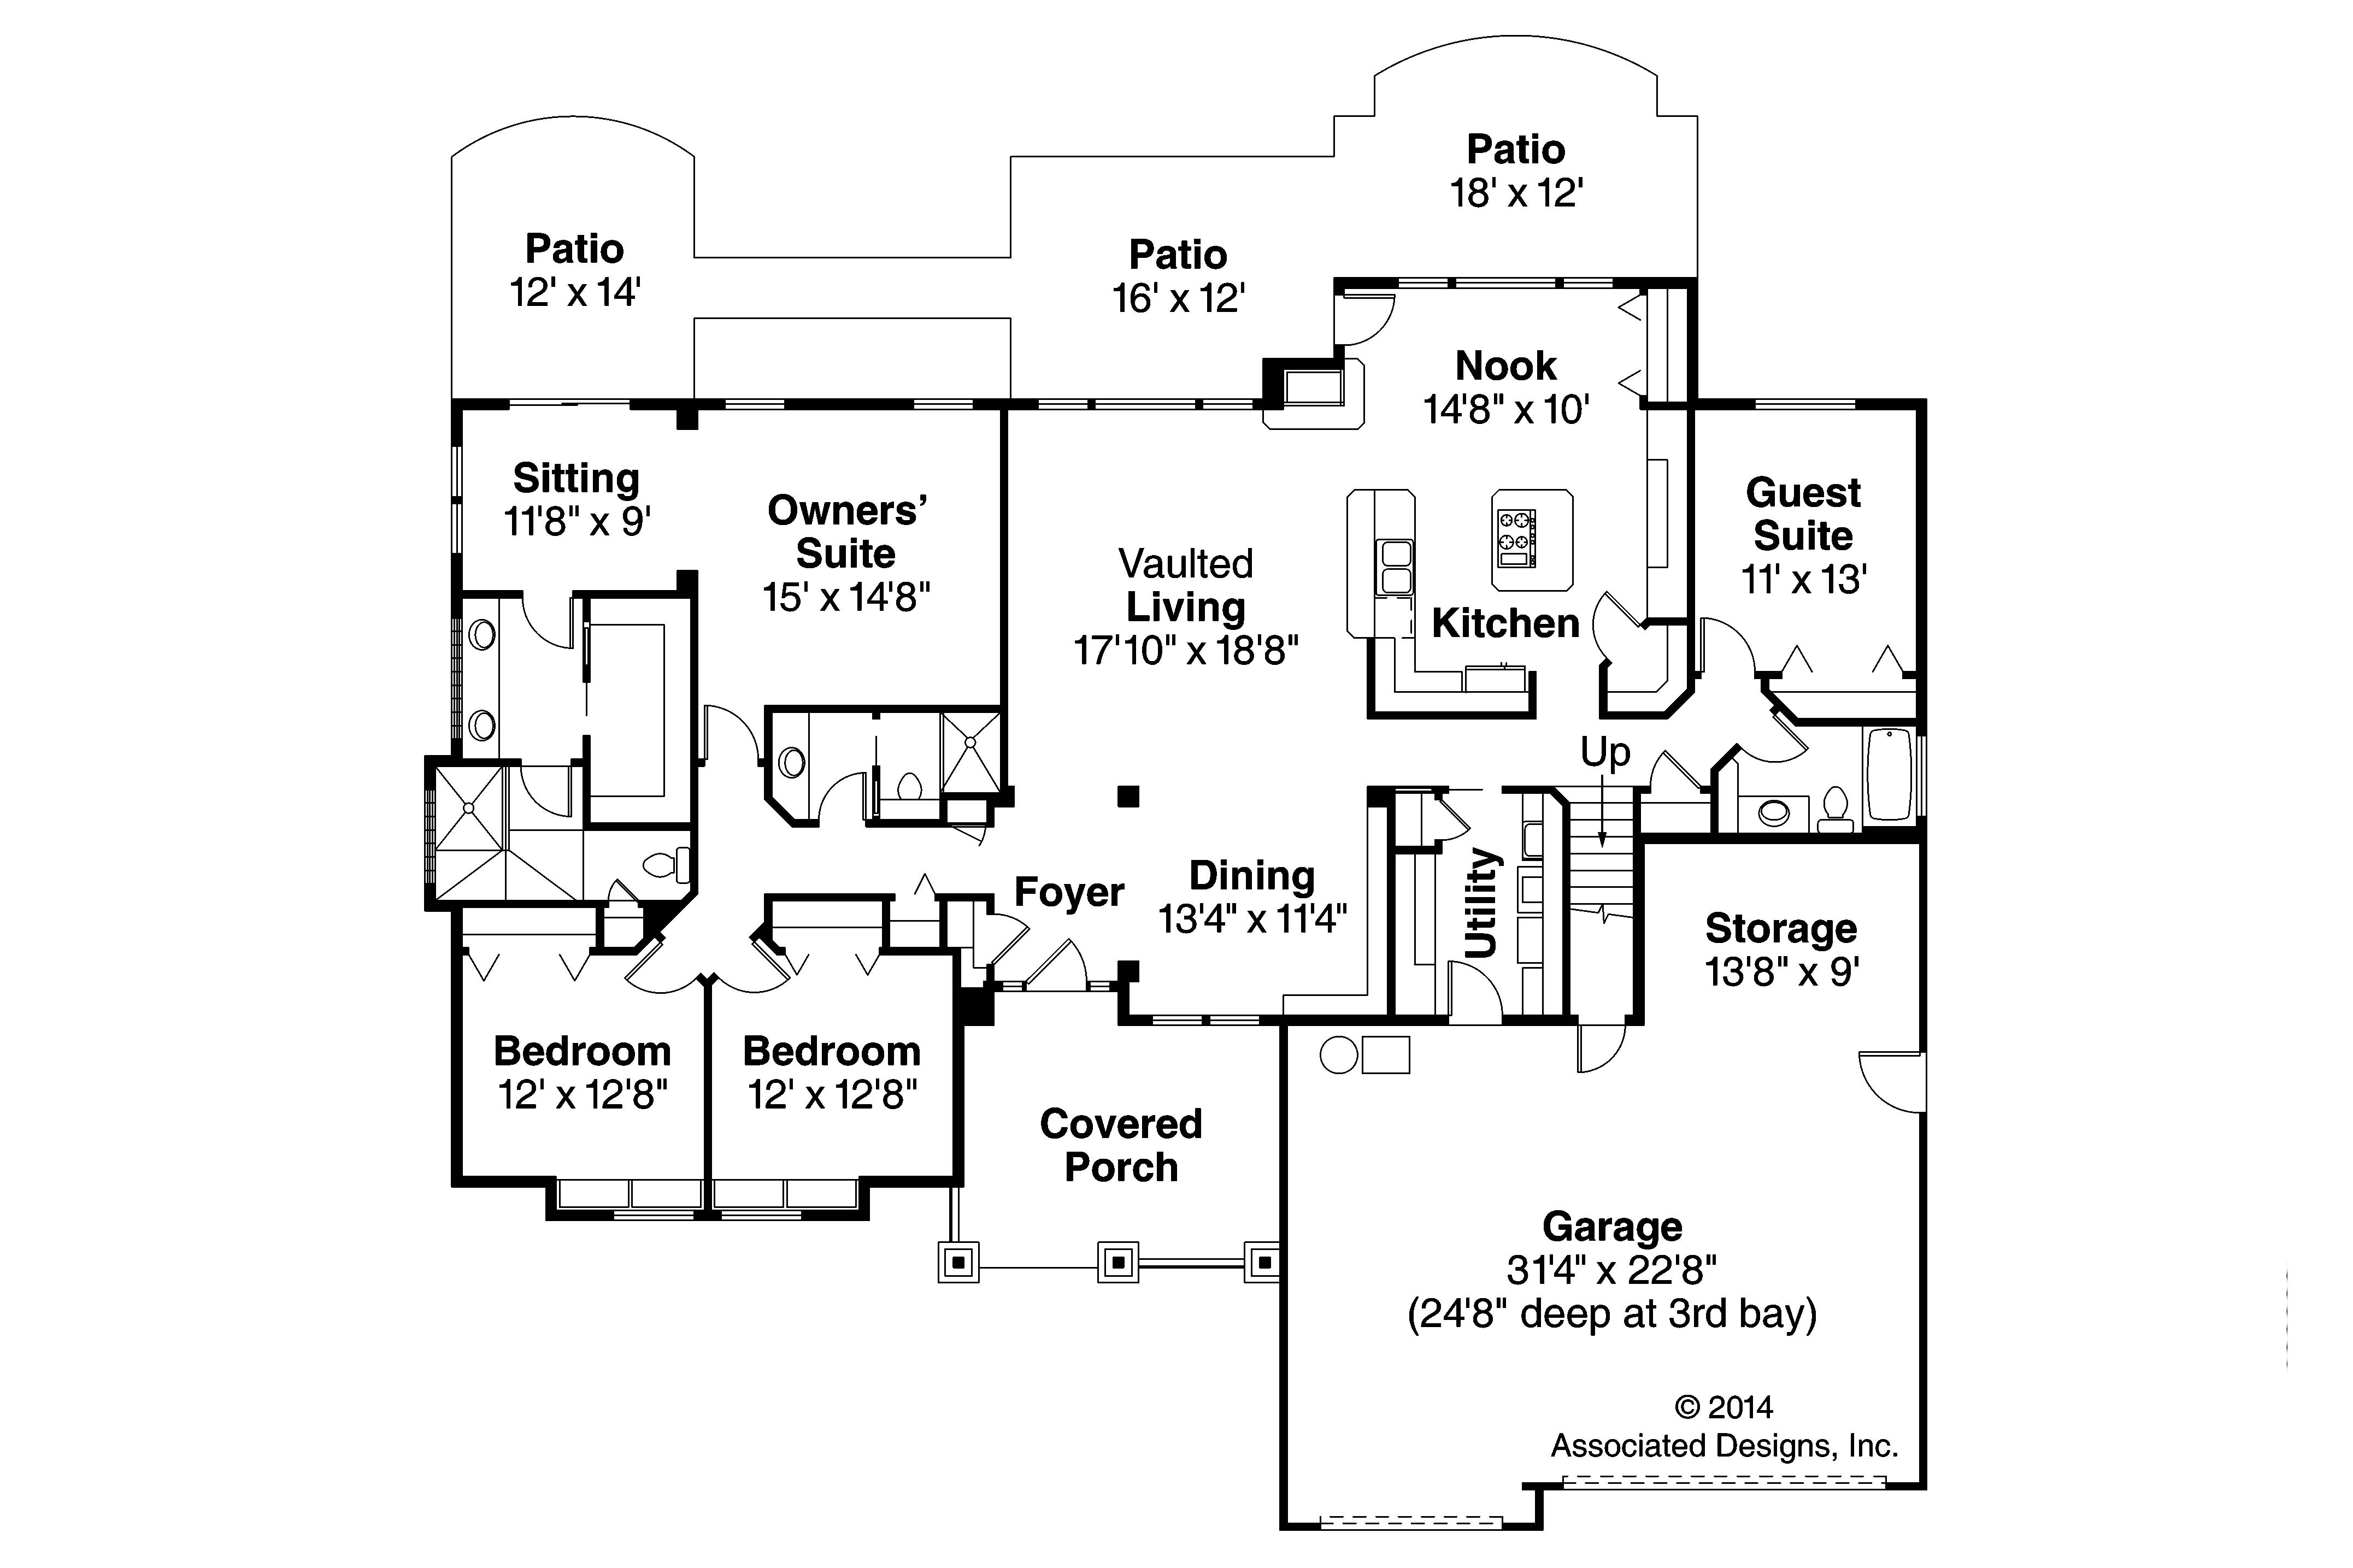 30 harmonious craftsman floor plans home building plans for Craftsman home designs floor plans